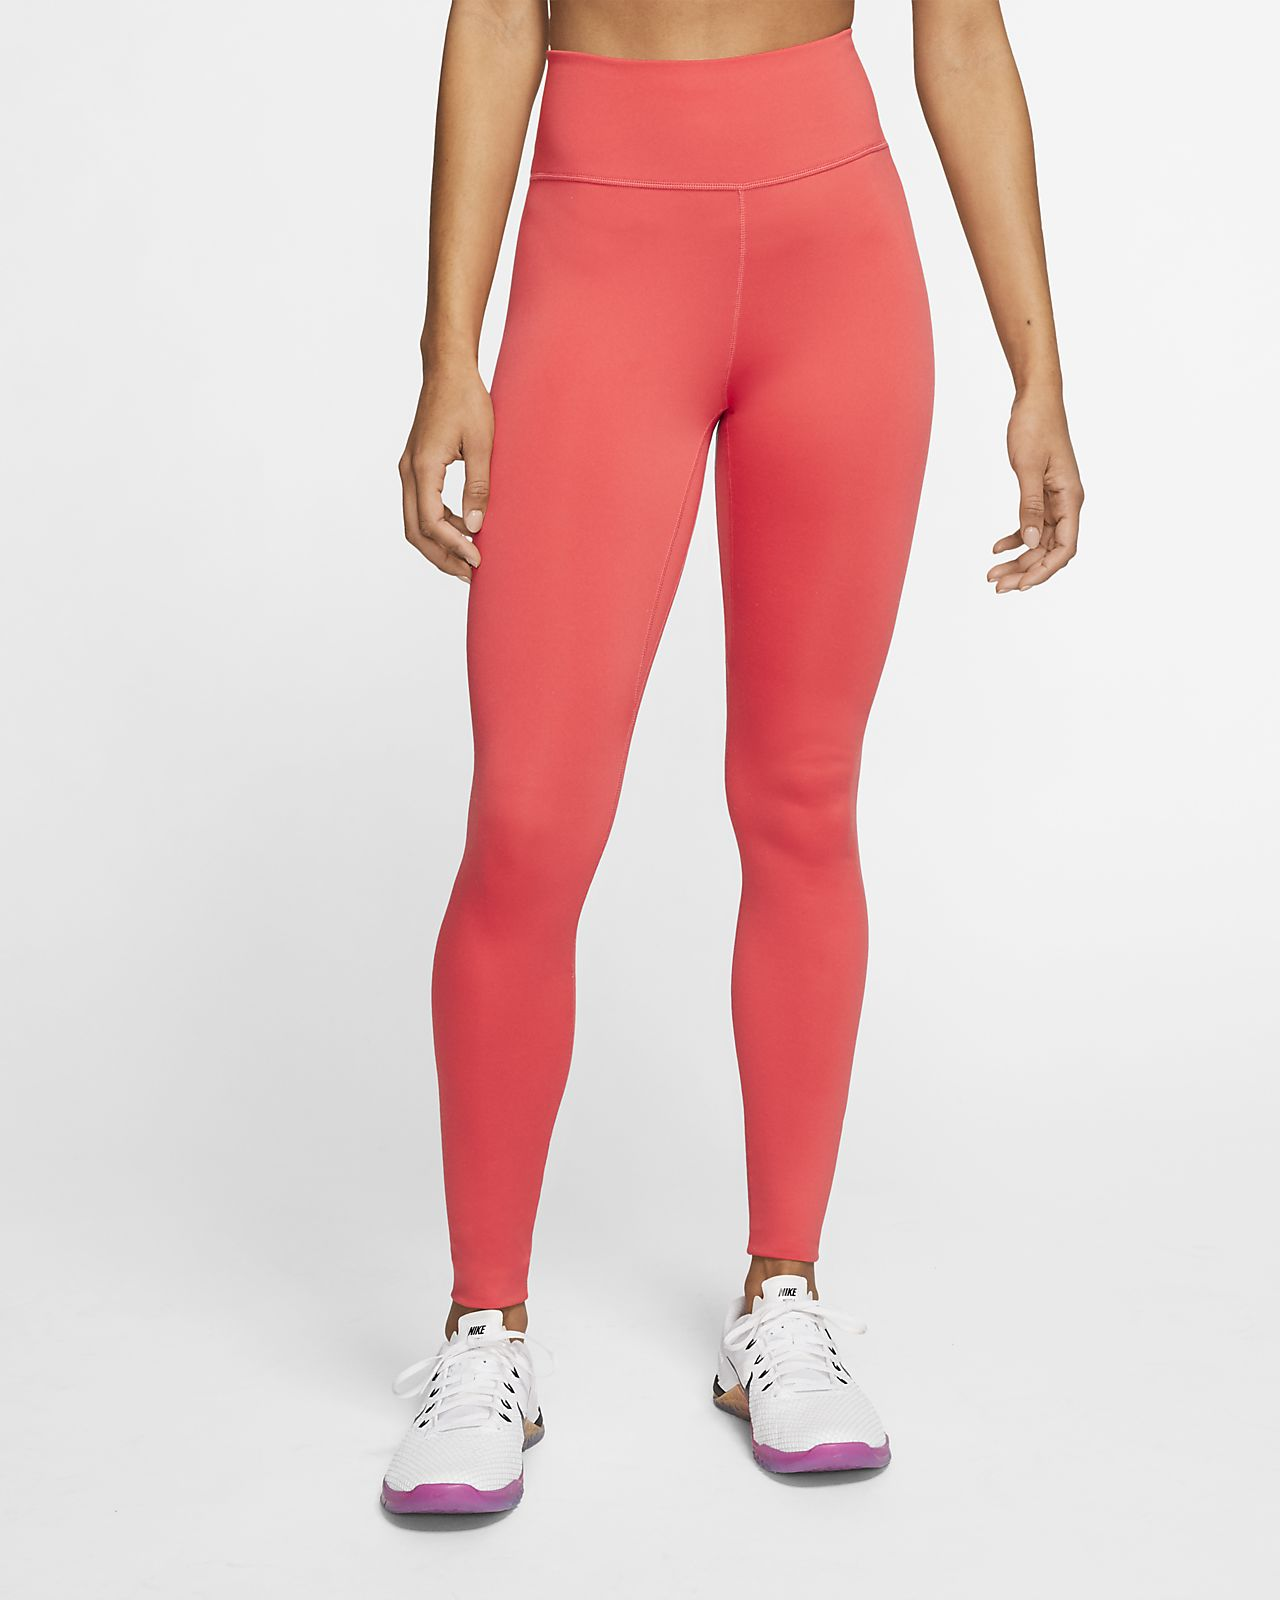 Nike One Damen-Tights